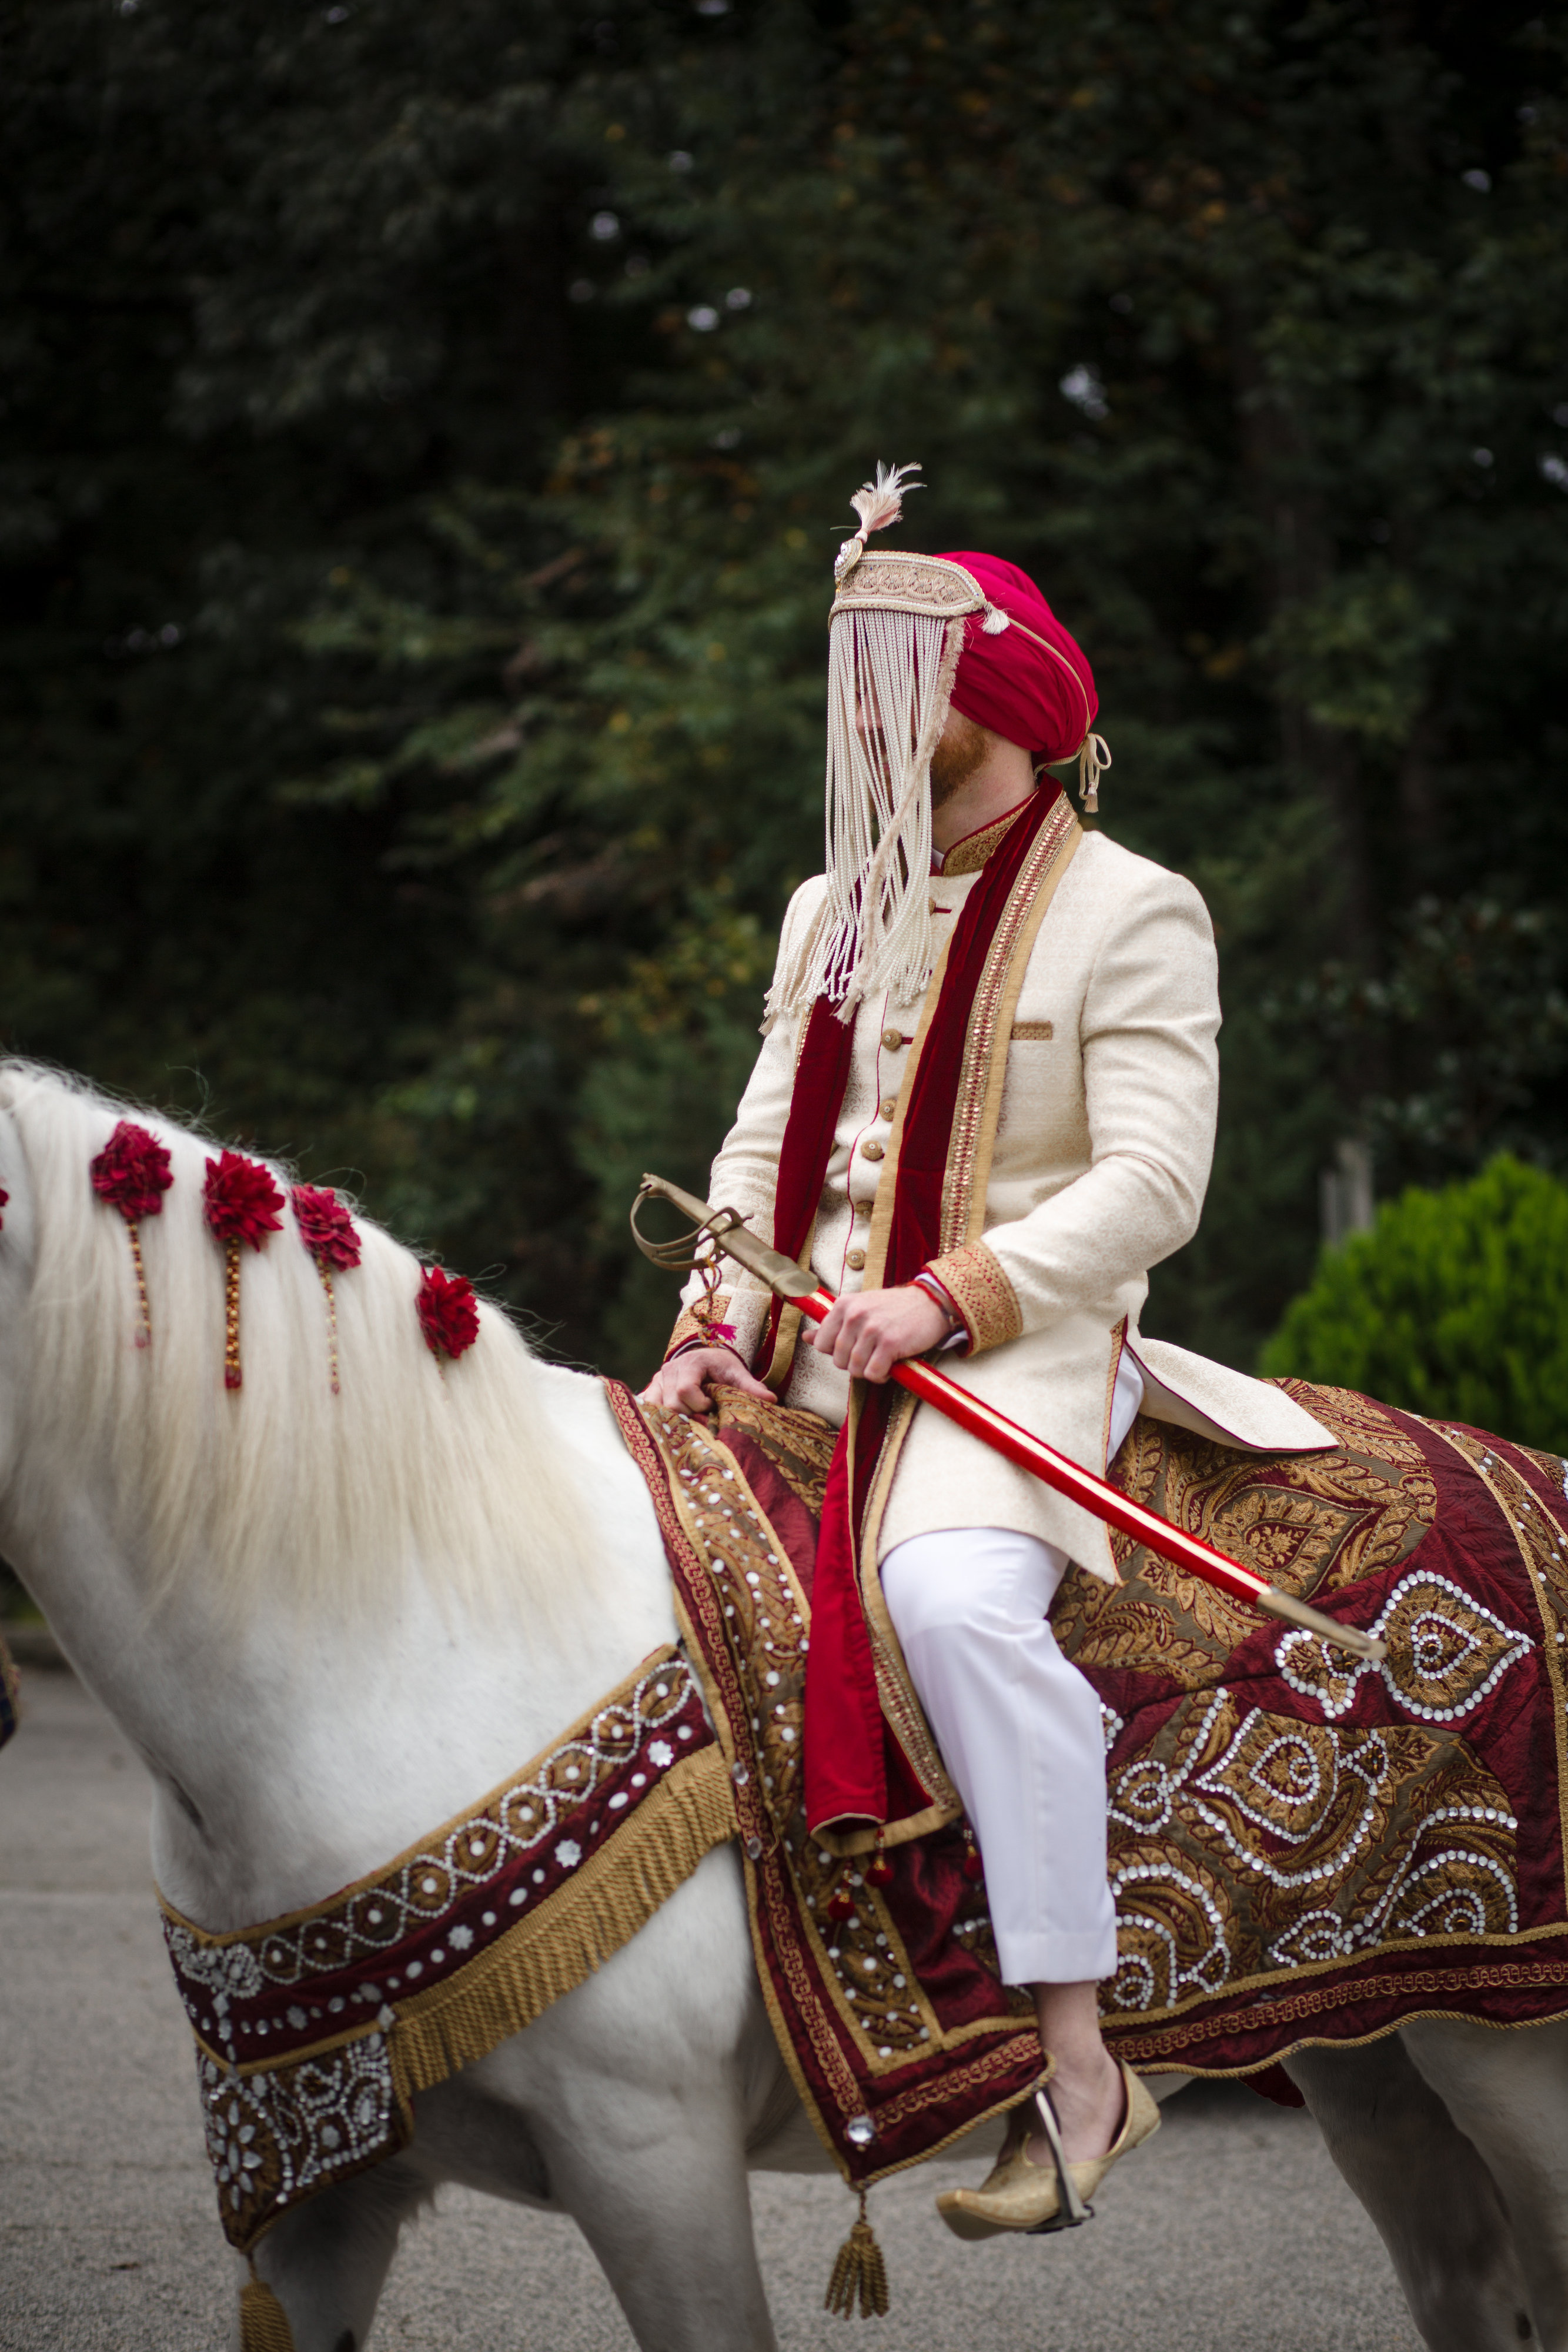 The Baraat symbolizes the official entrance of the groom. (Image: Laura Bryan Photography){ }